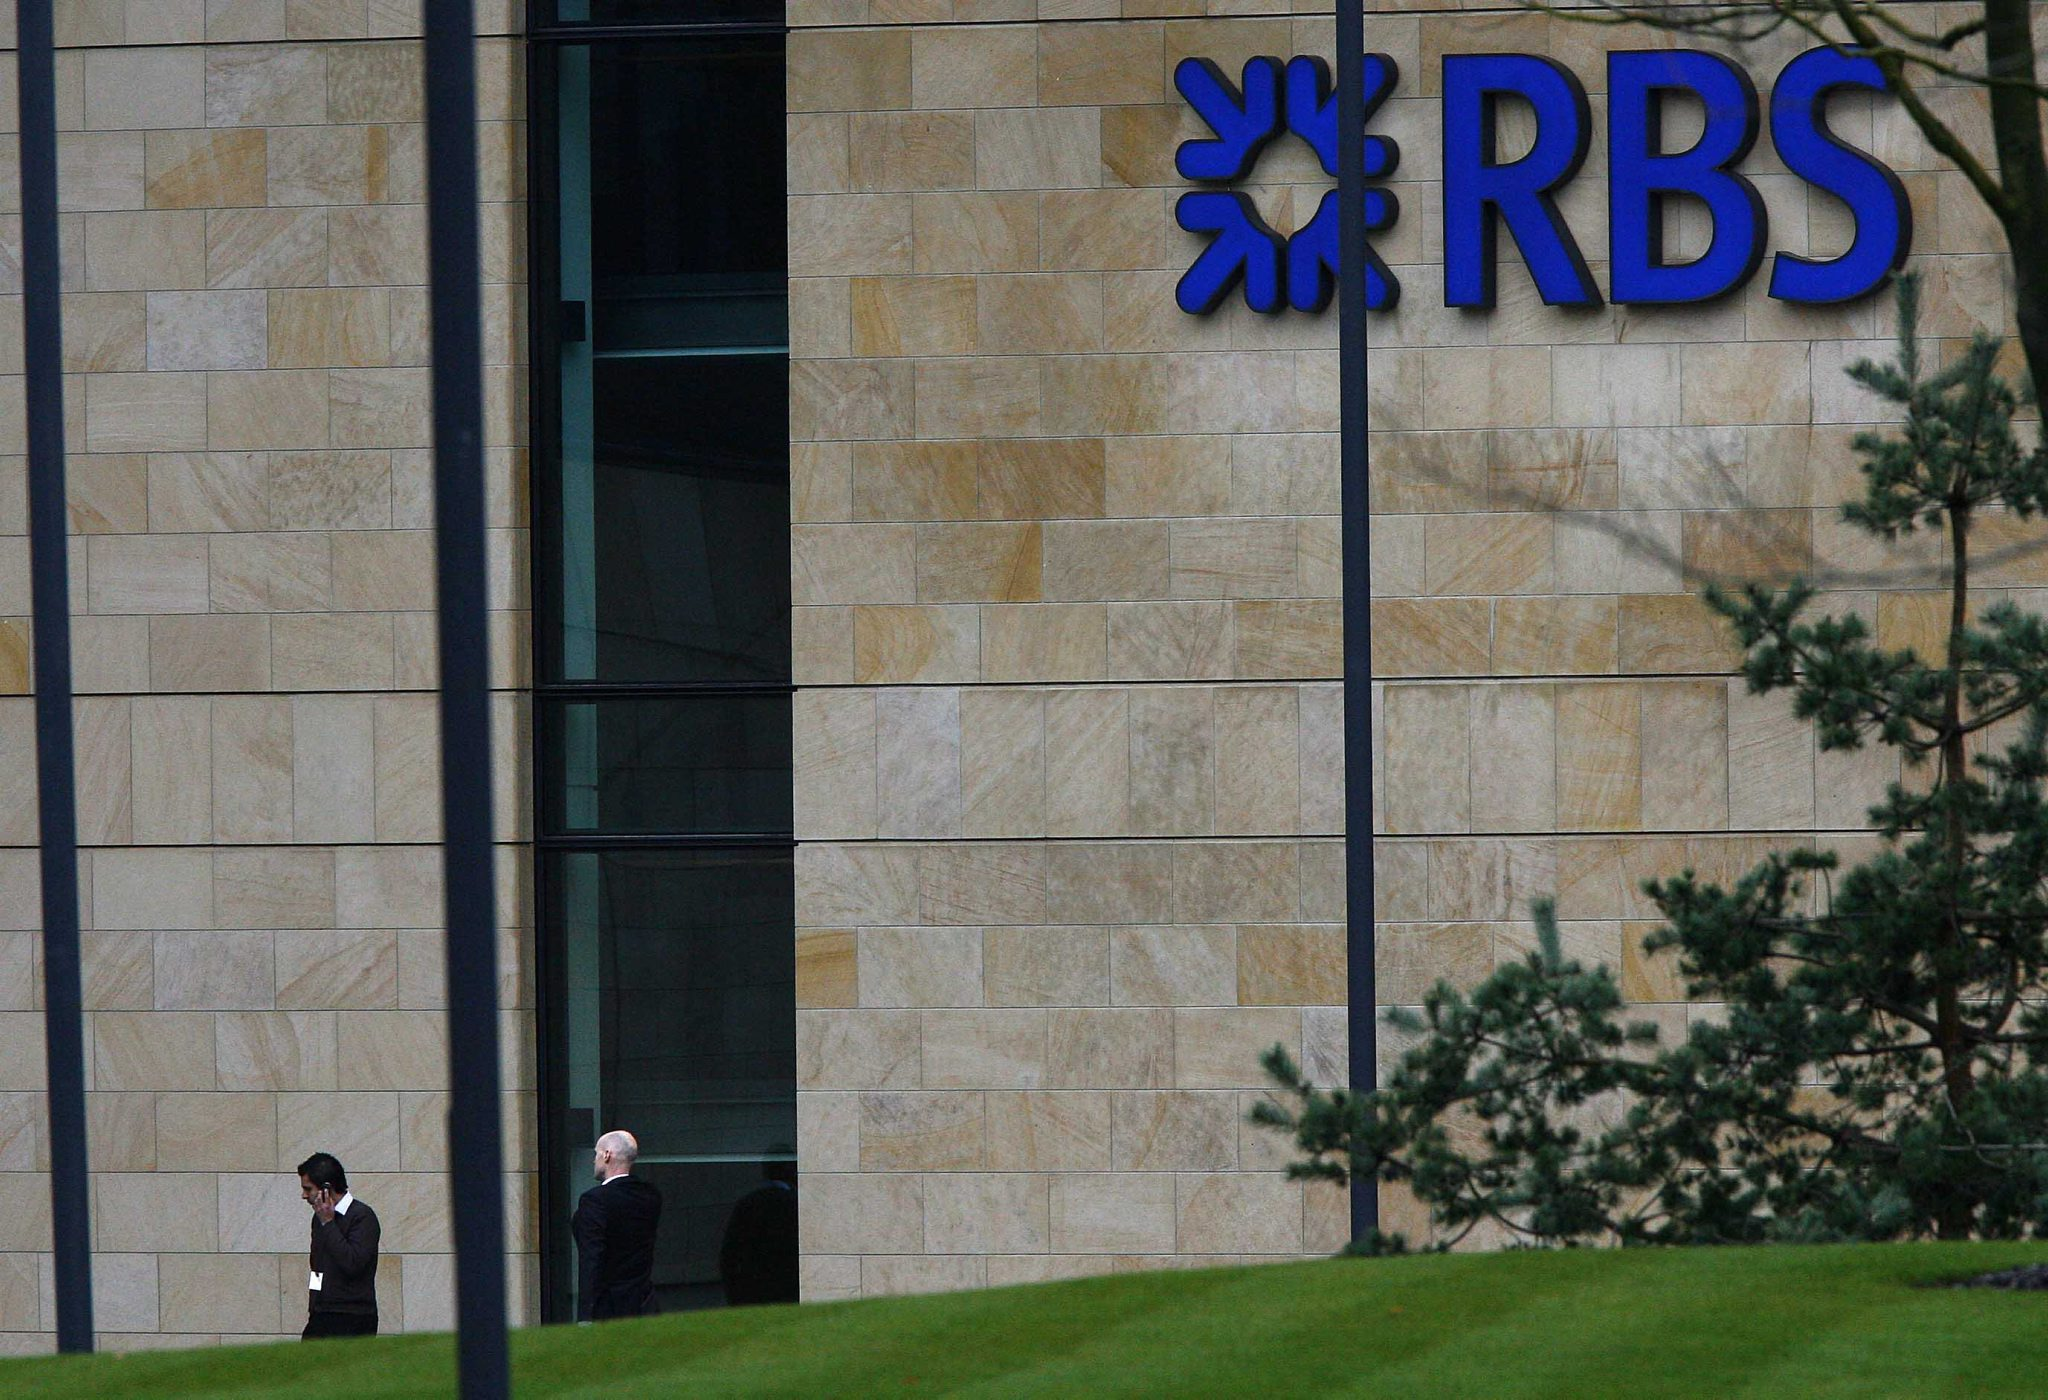 A leaked report suggests a toxic culture at RBS went right to the top